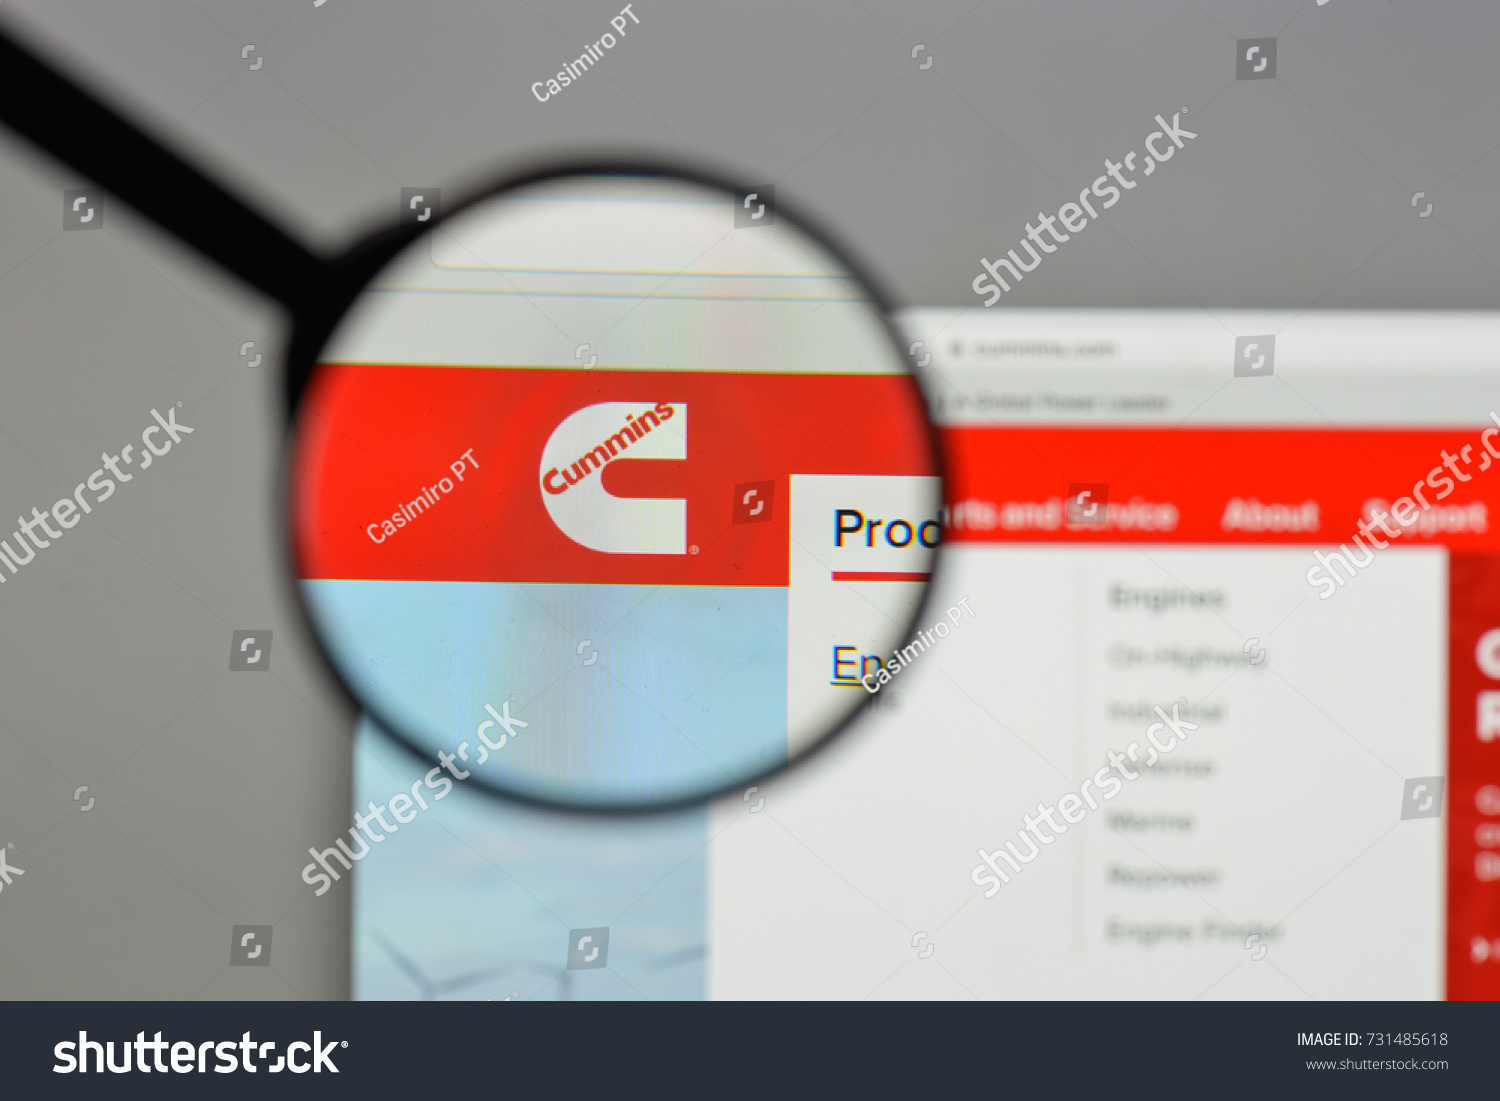 Milan italy august 10 2017 cummins stock photo 731485618 shutterstock milan italy august 10 2017 cummins logo on the website homepage biocorpaavc Images